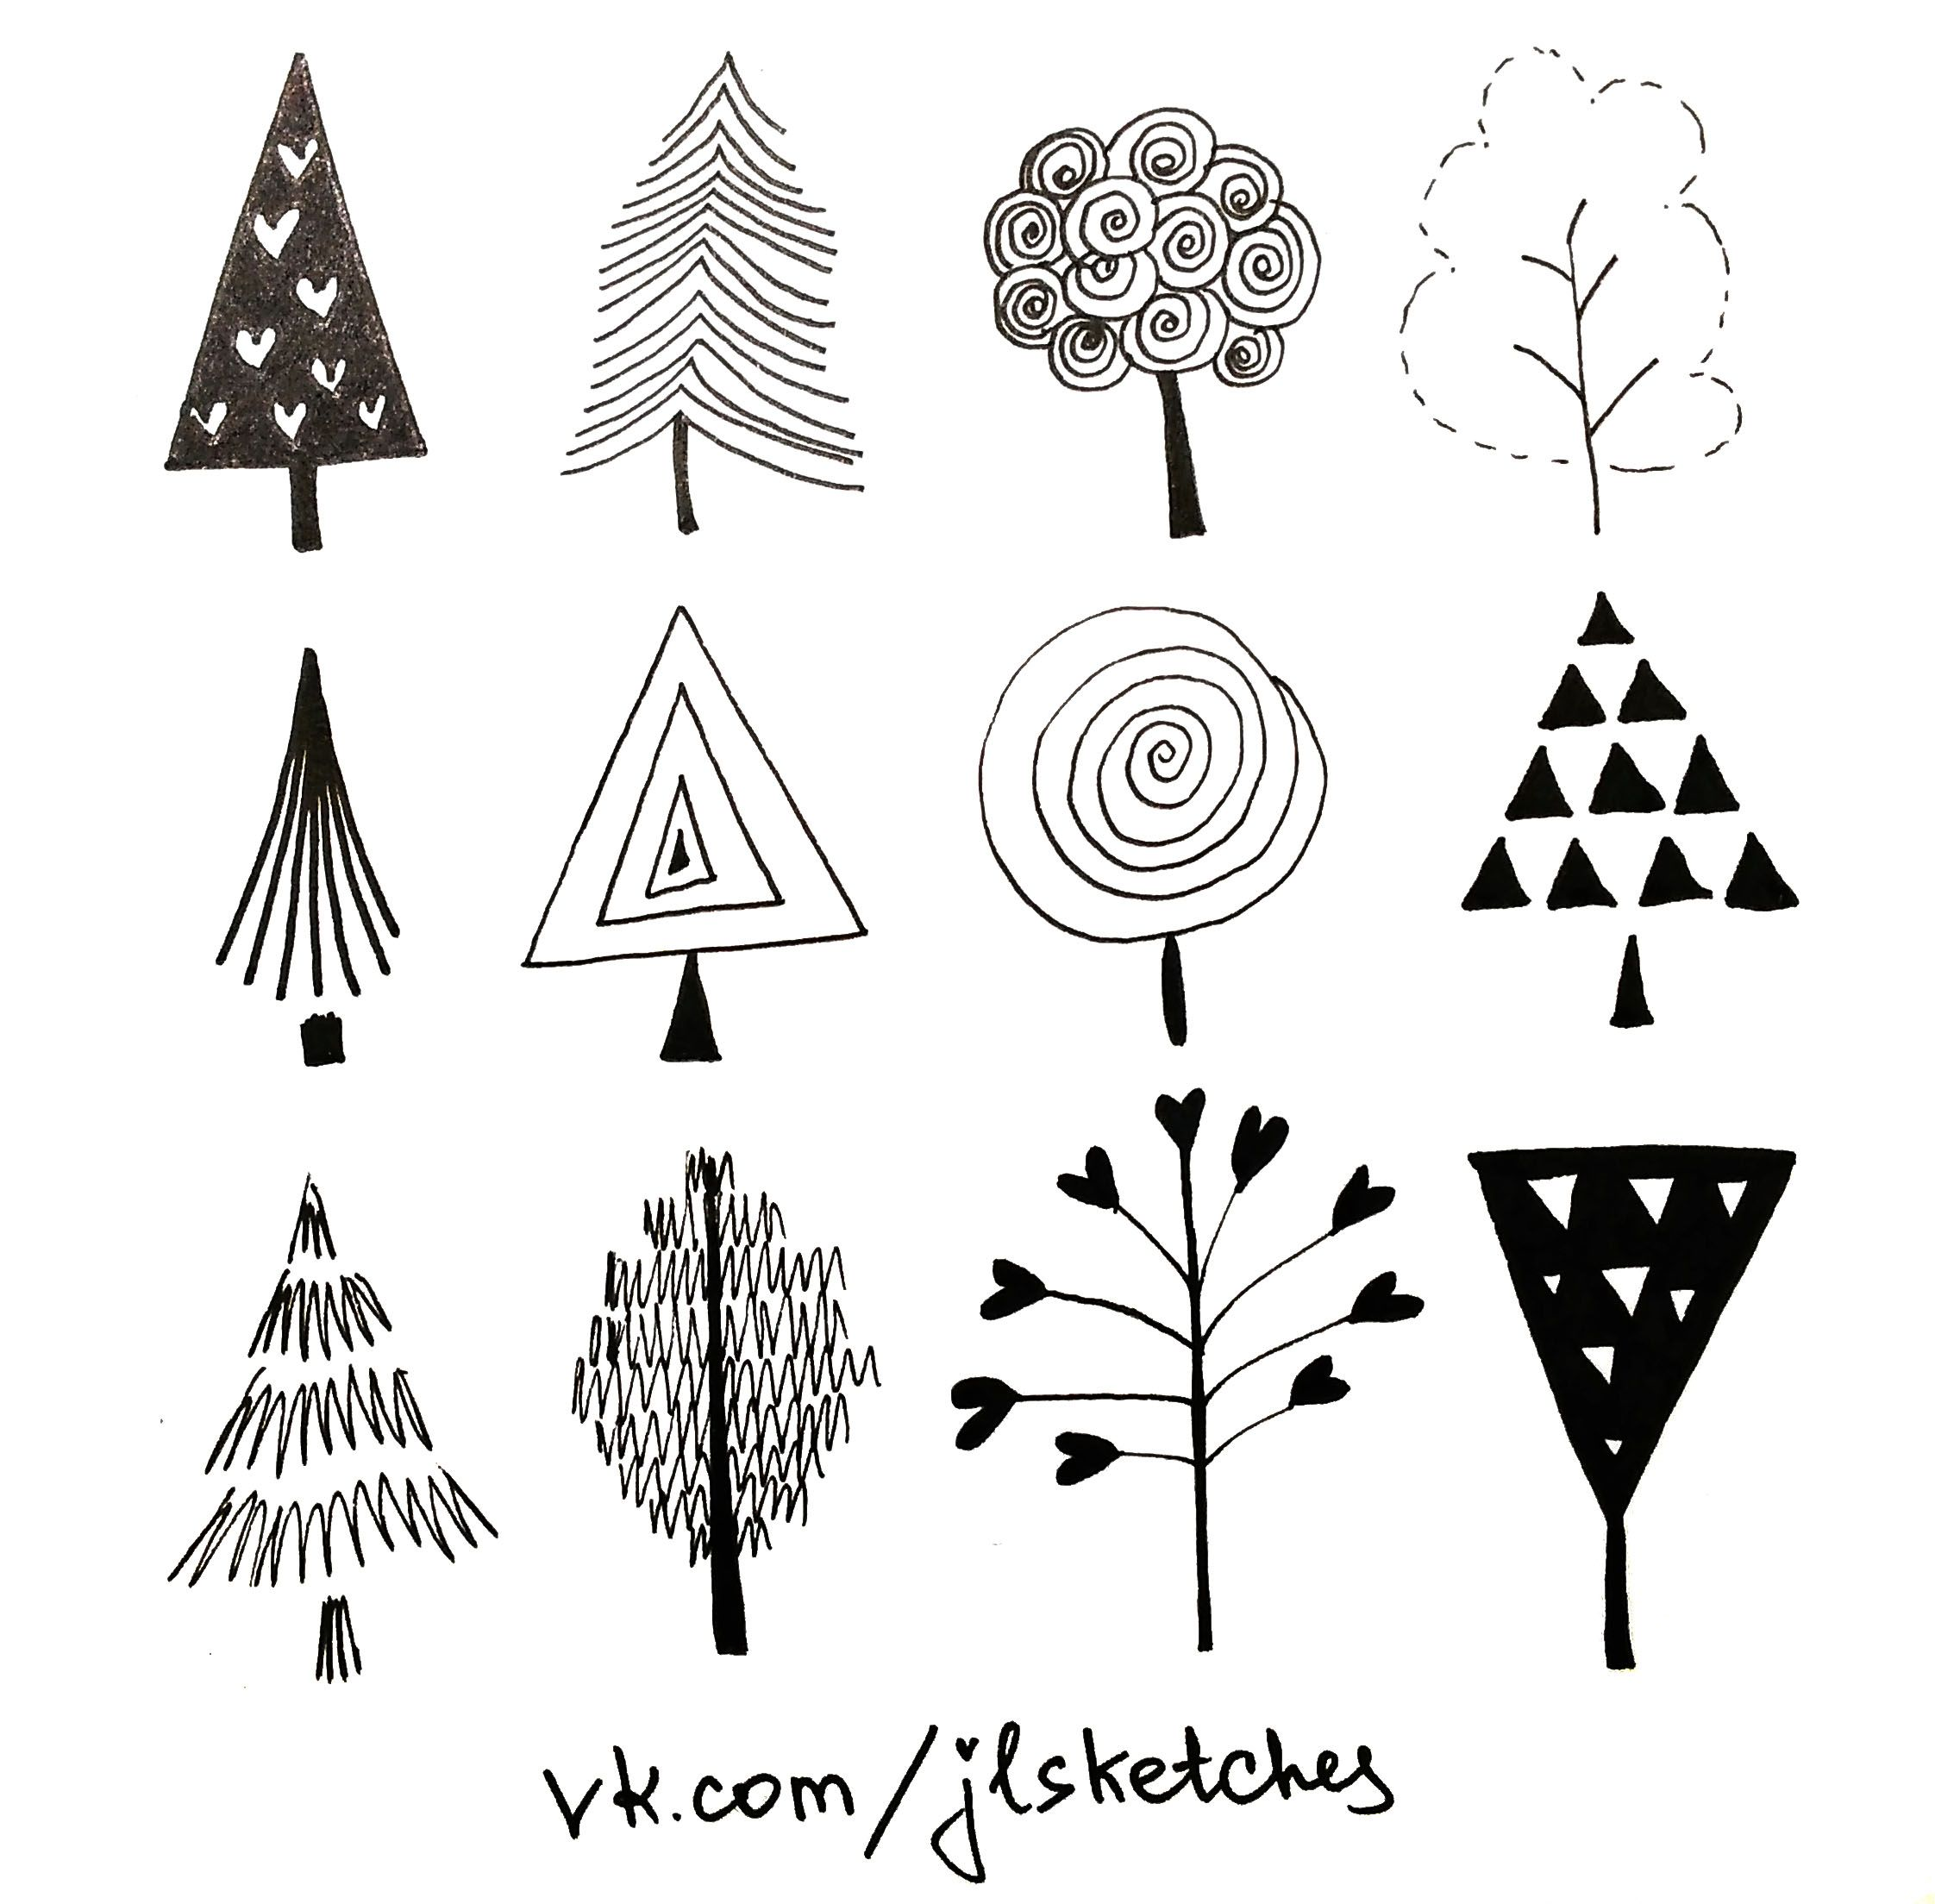 Doodle Trees Tree Doodle Tree Tattoo Small Christmas Art For Kids